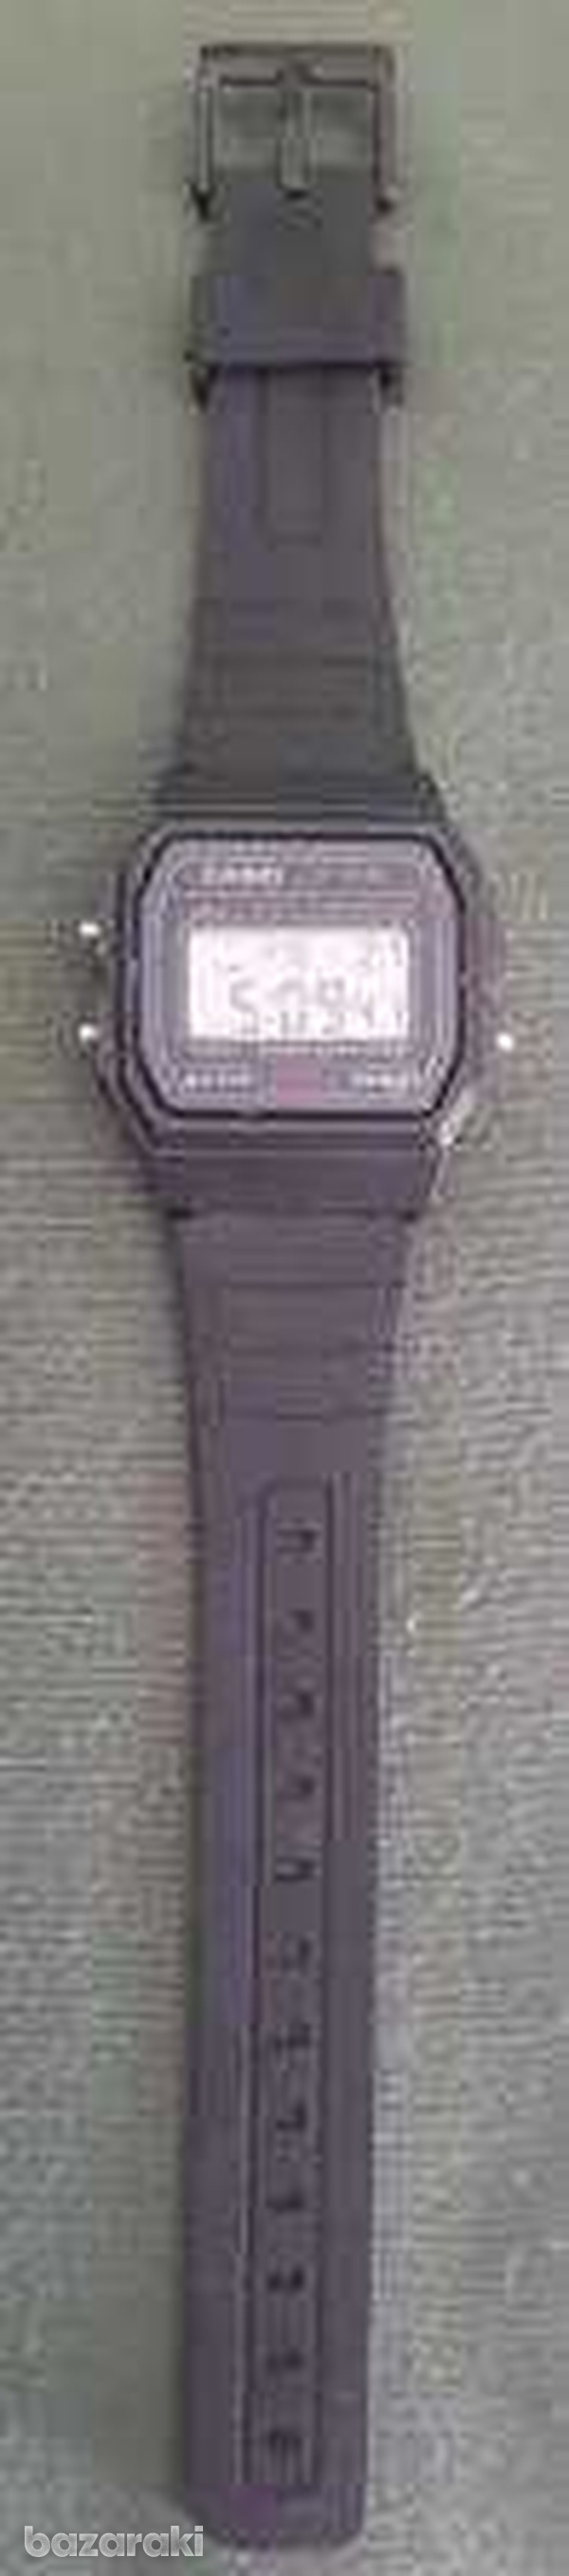 Lcd digital watches-2